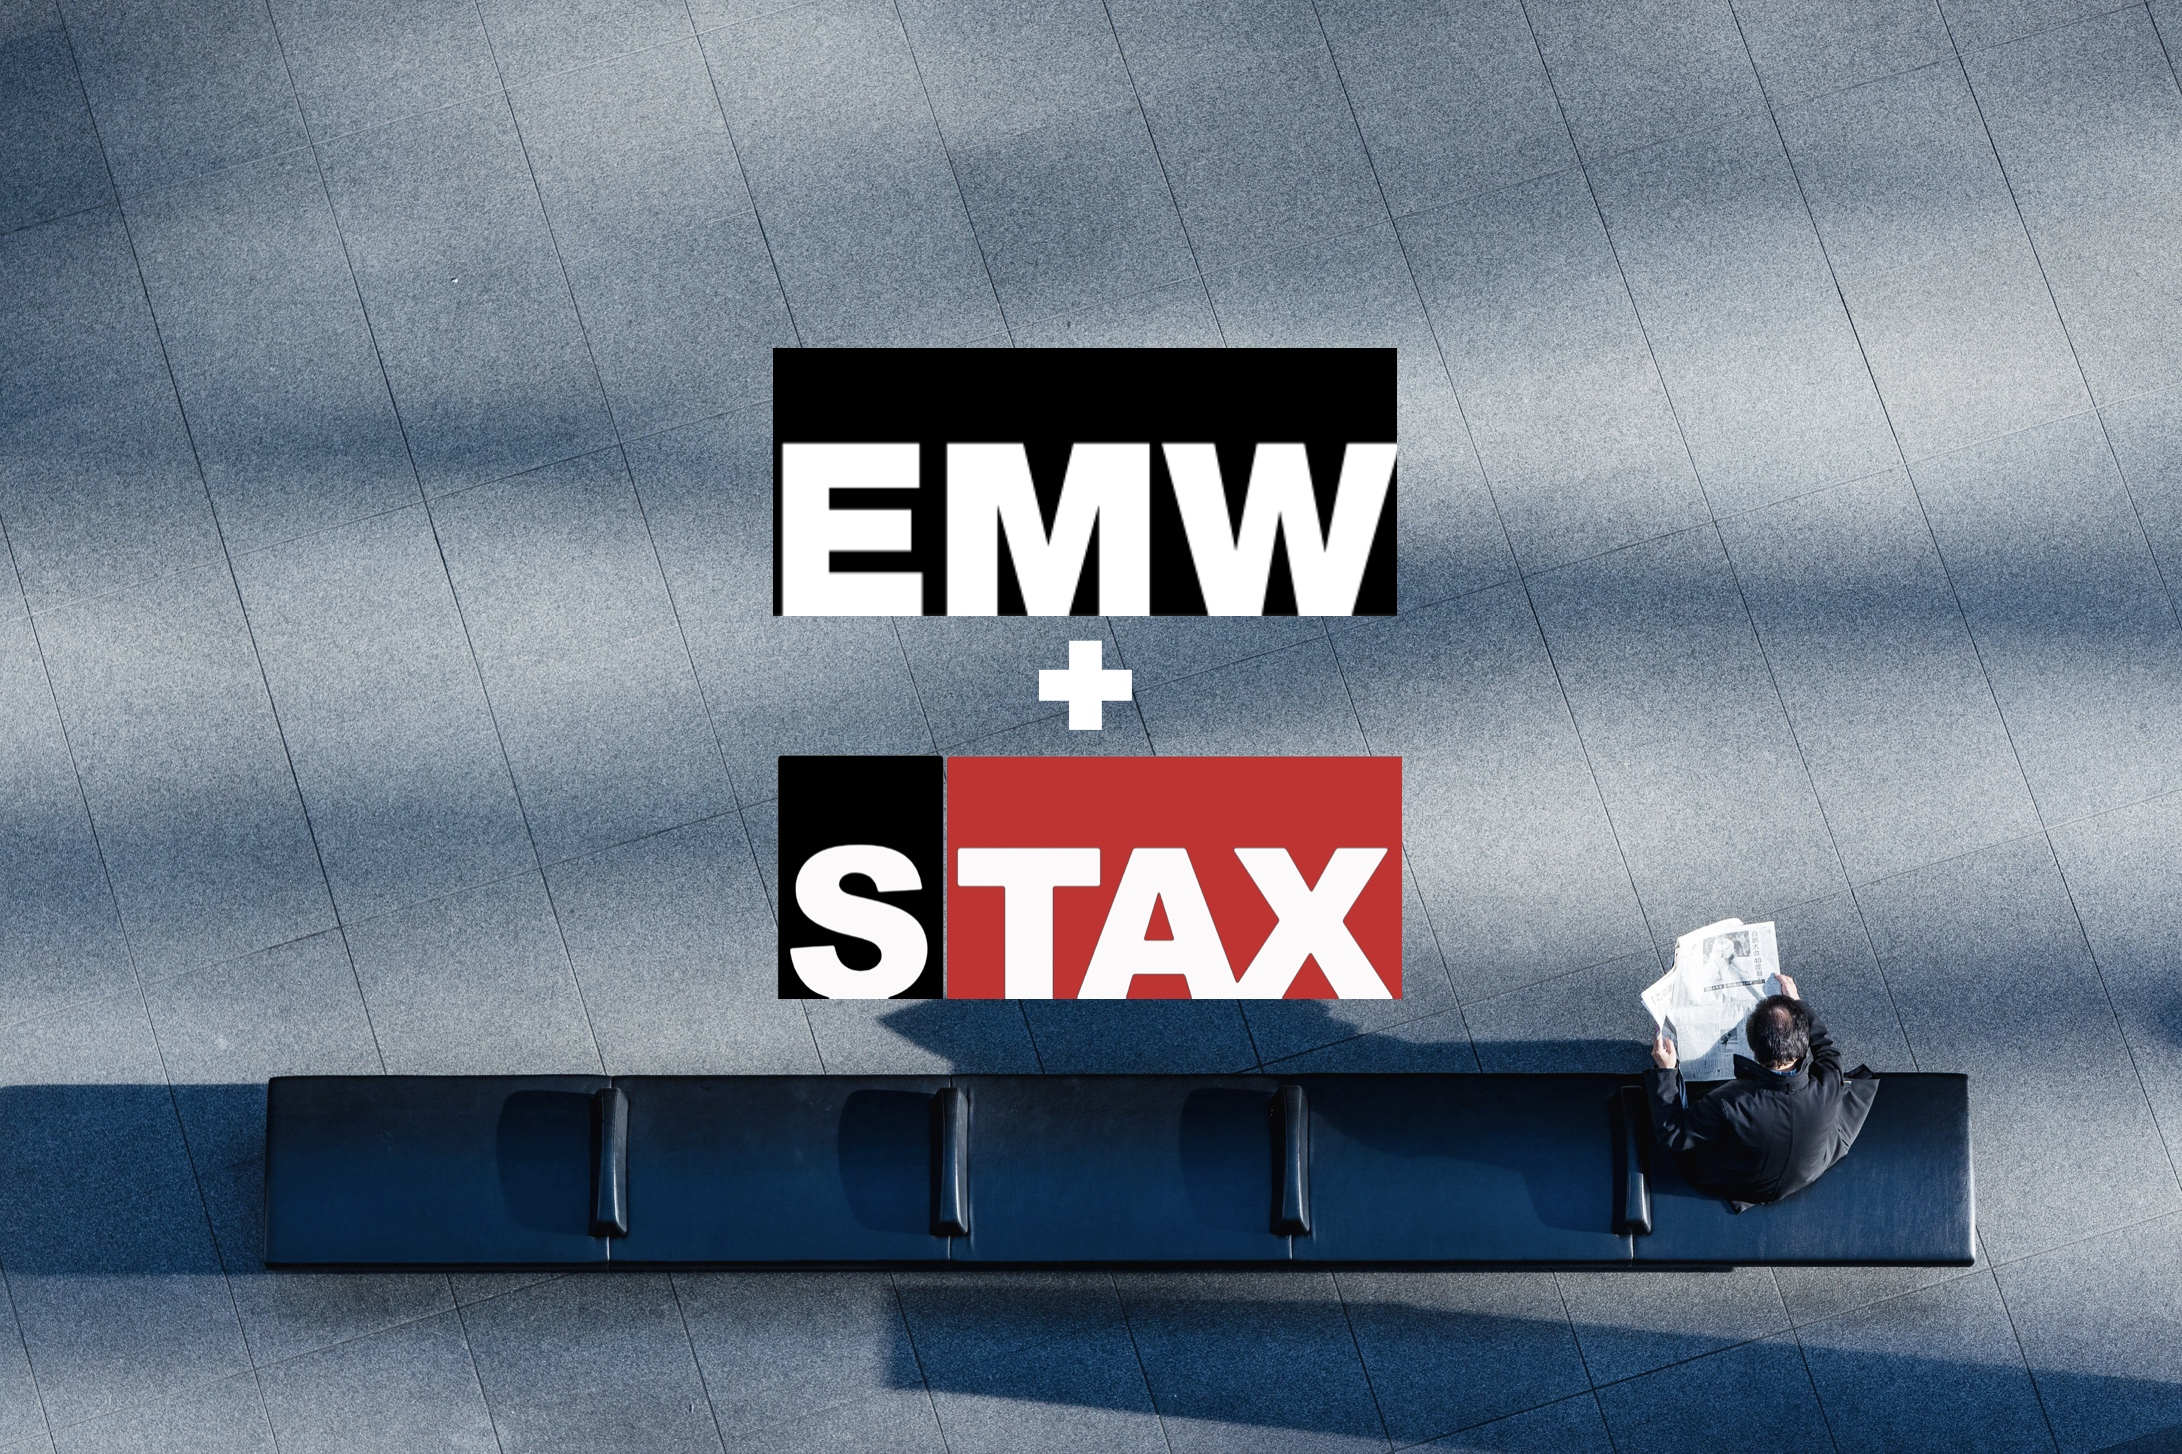 Commercial law firm EMW supports the acquisition of Capital Allowance property tax firm STax